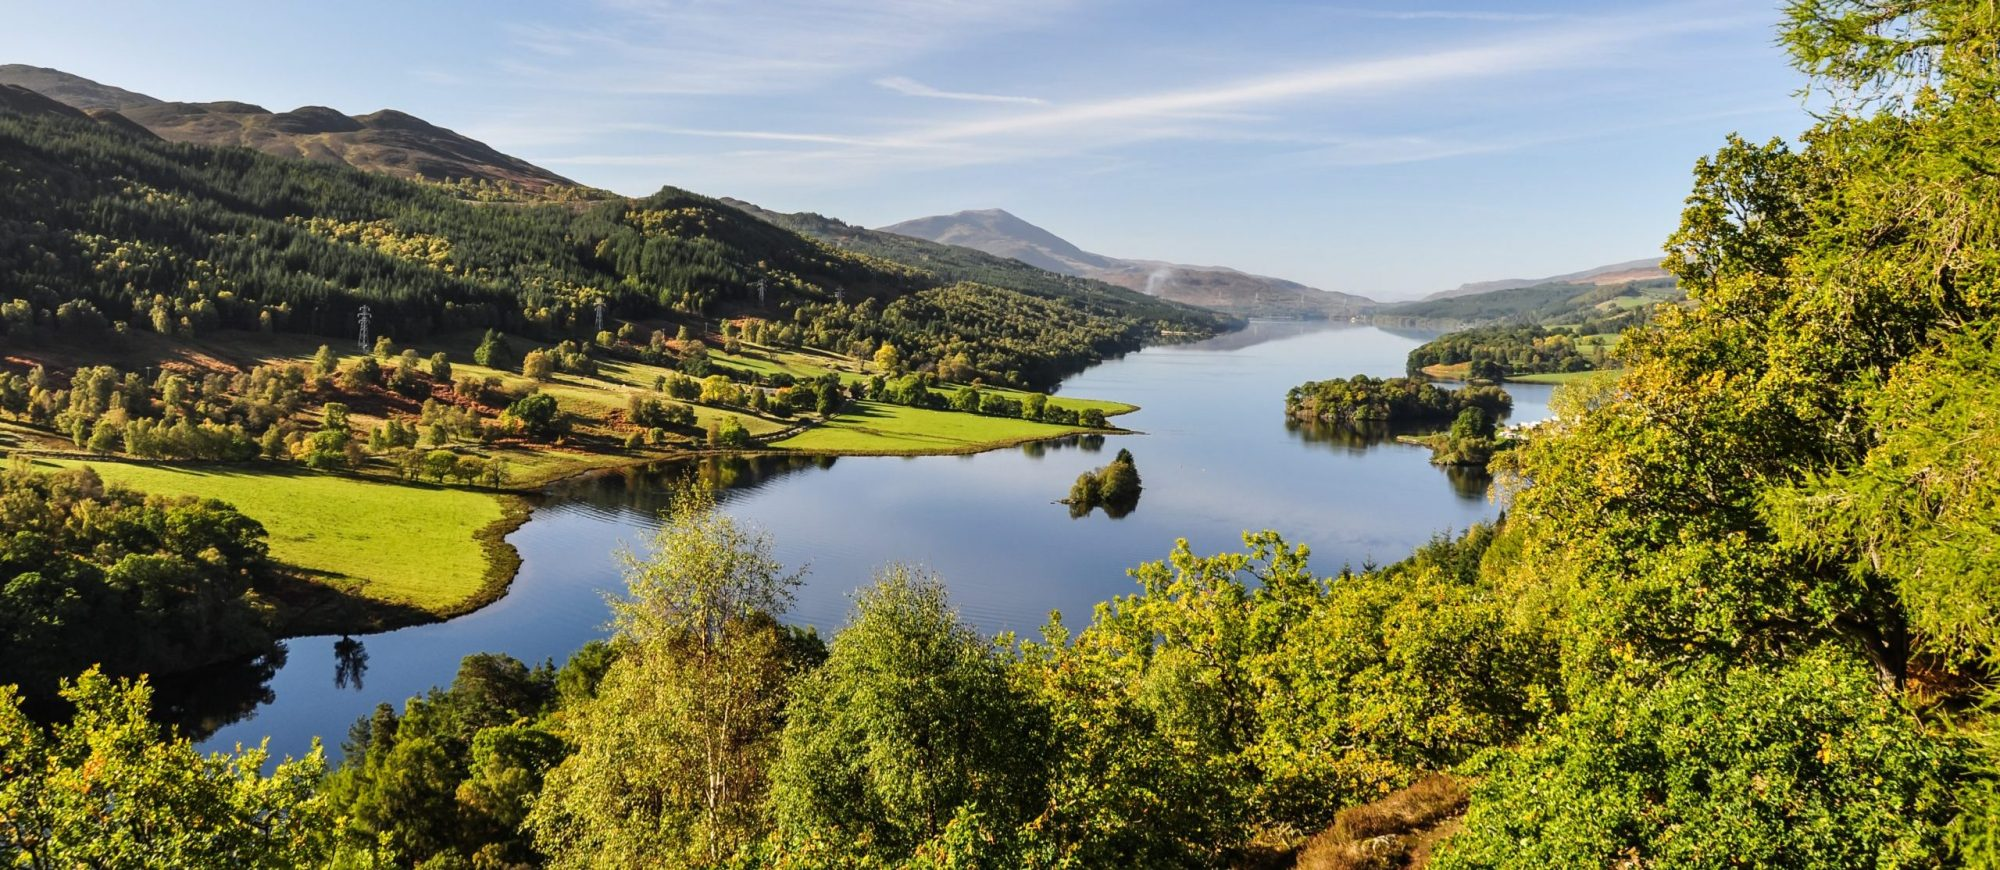 Queens View Shutterstock Scaled Aspect Ratio X